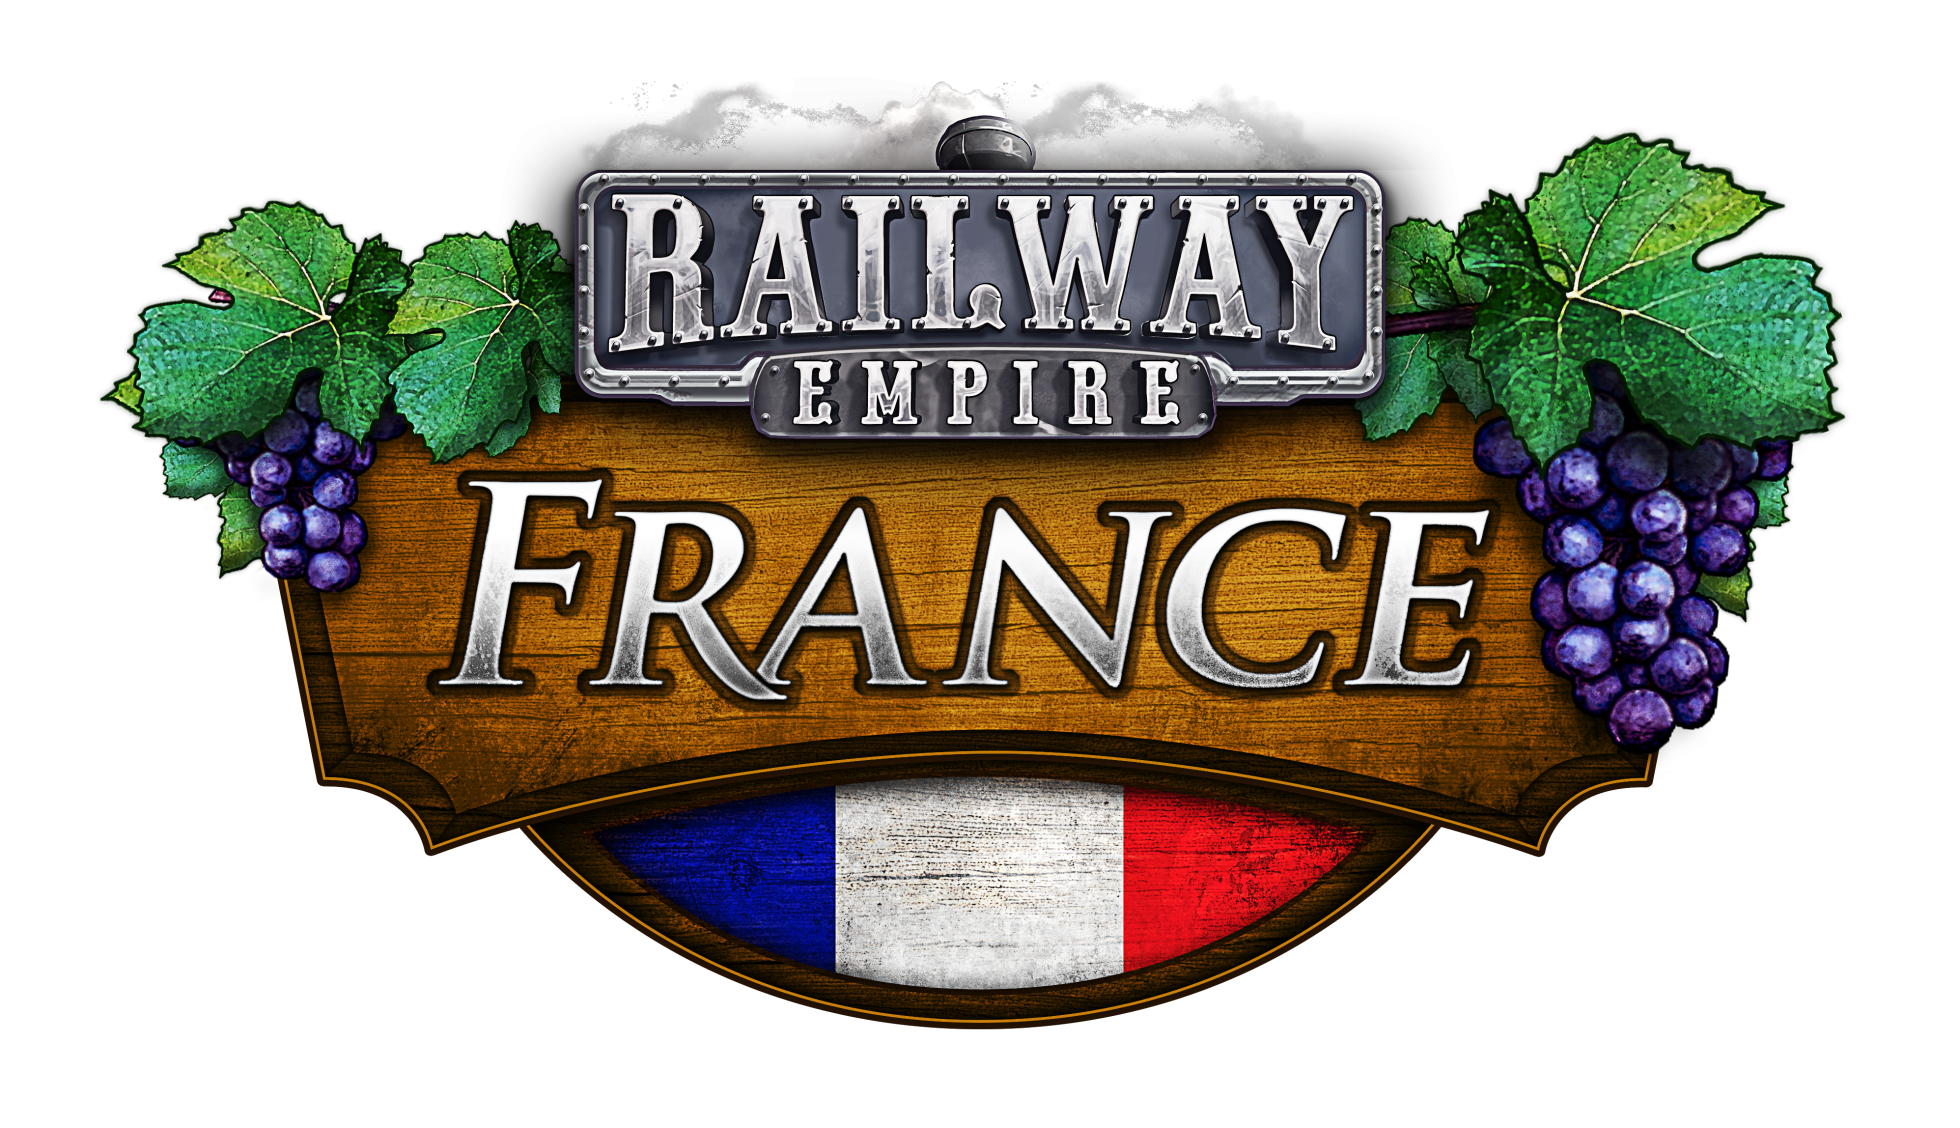 Railway Empire Heads To France With New DLC | Nothing But Geek